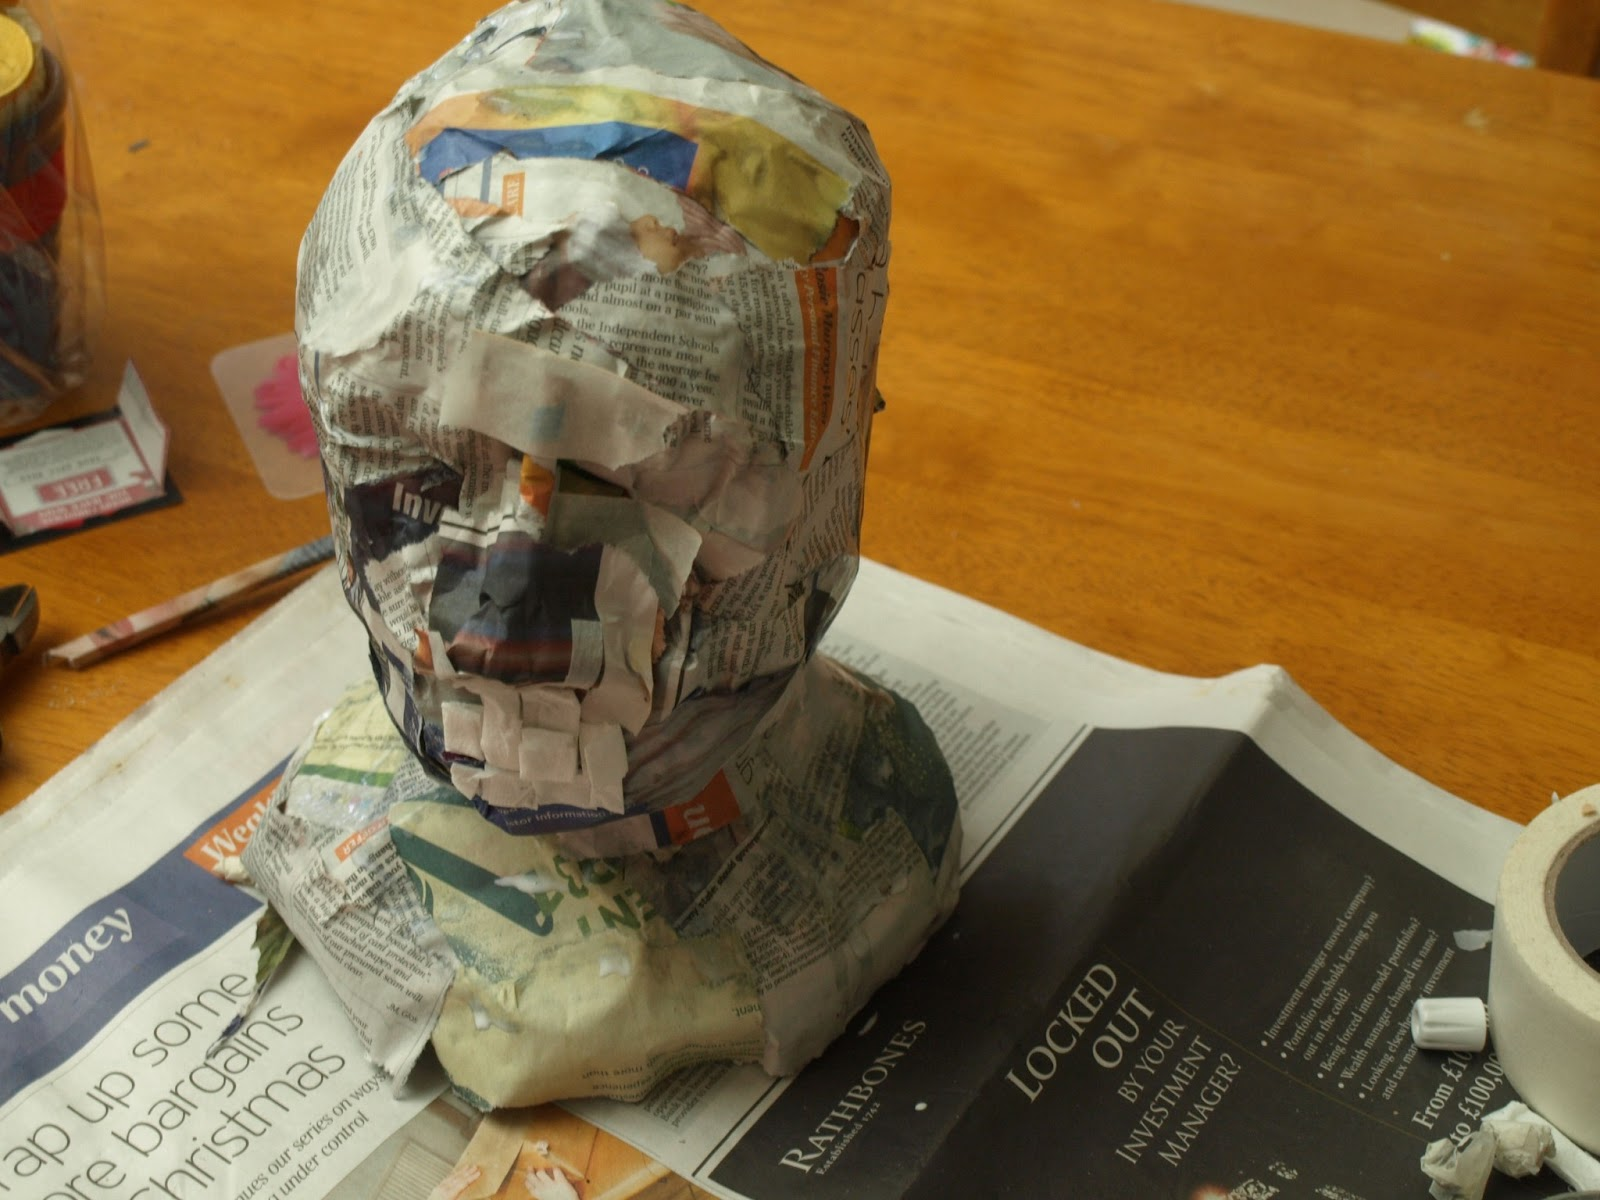 Lace hearts making of a papier mache head for Homemade papier mache